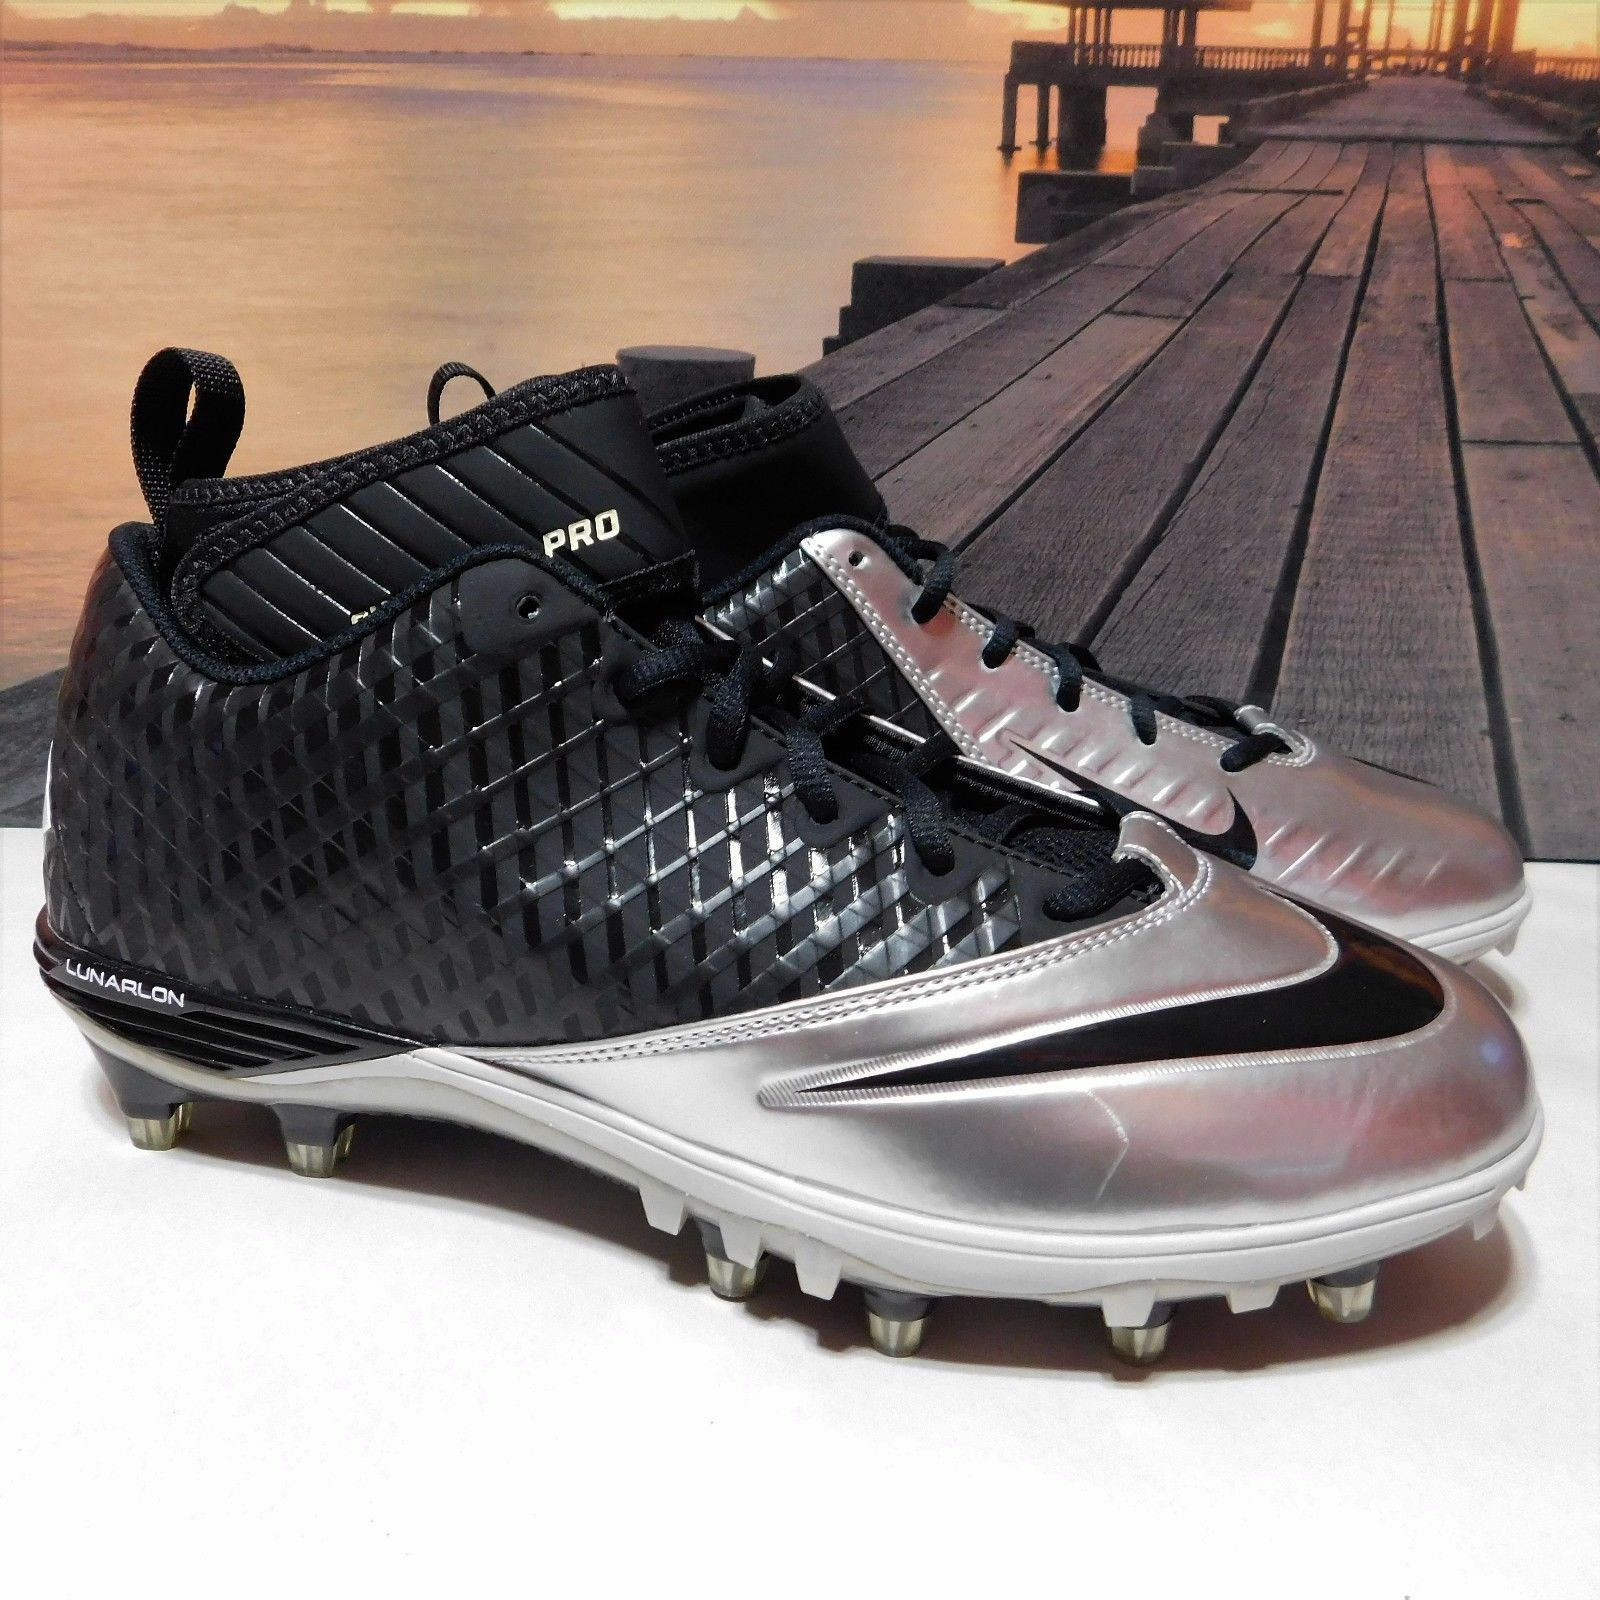 New Mens 11.5 Nike Lunar Superbad Pro TD Football Cleats Black Silver 534994-023